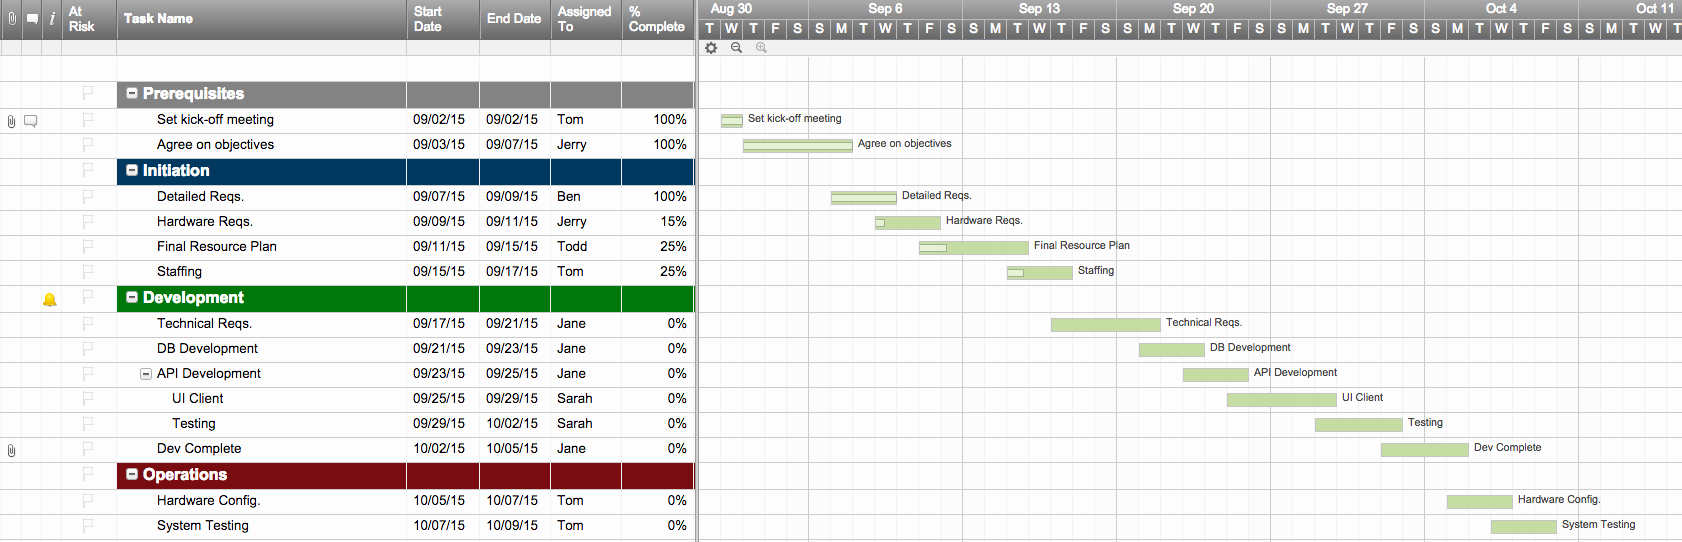 Project Plan Examples Excel Best Of top Project Plan Templates for Excel